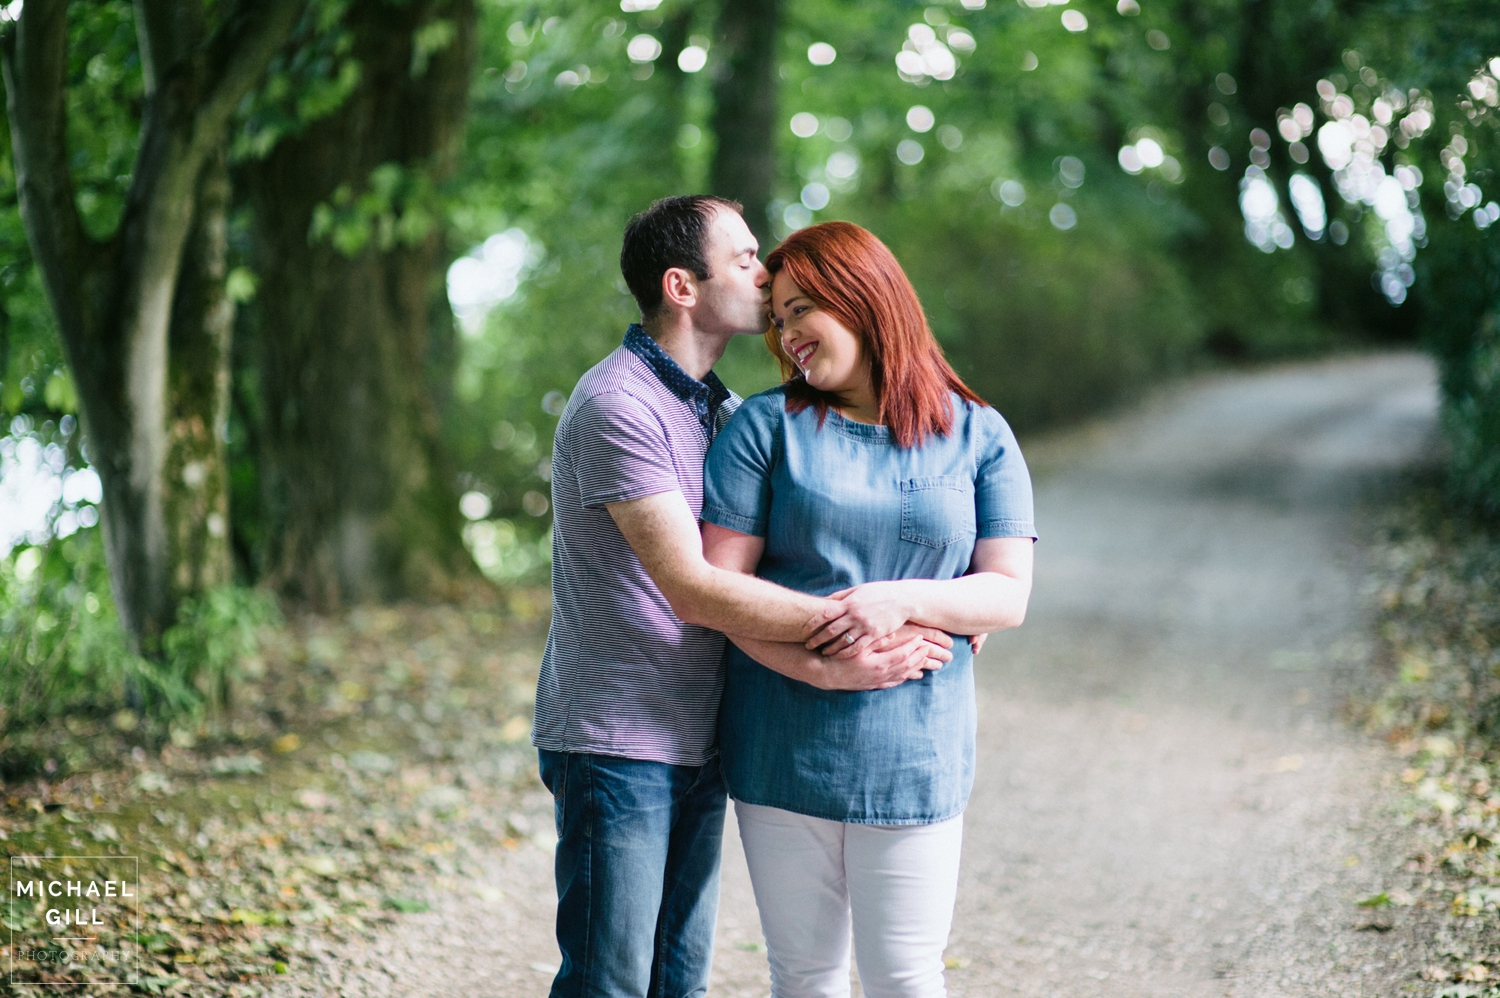 Michael_Gill_Photography_Greencastle_Engagement-5592.jpg